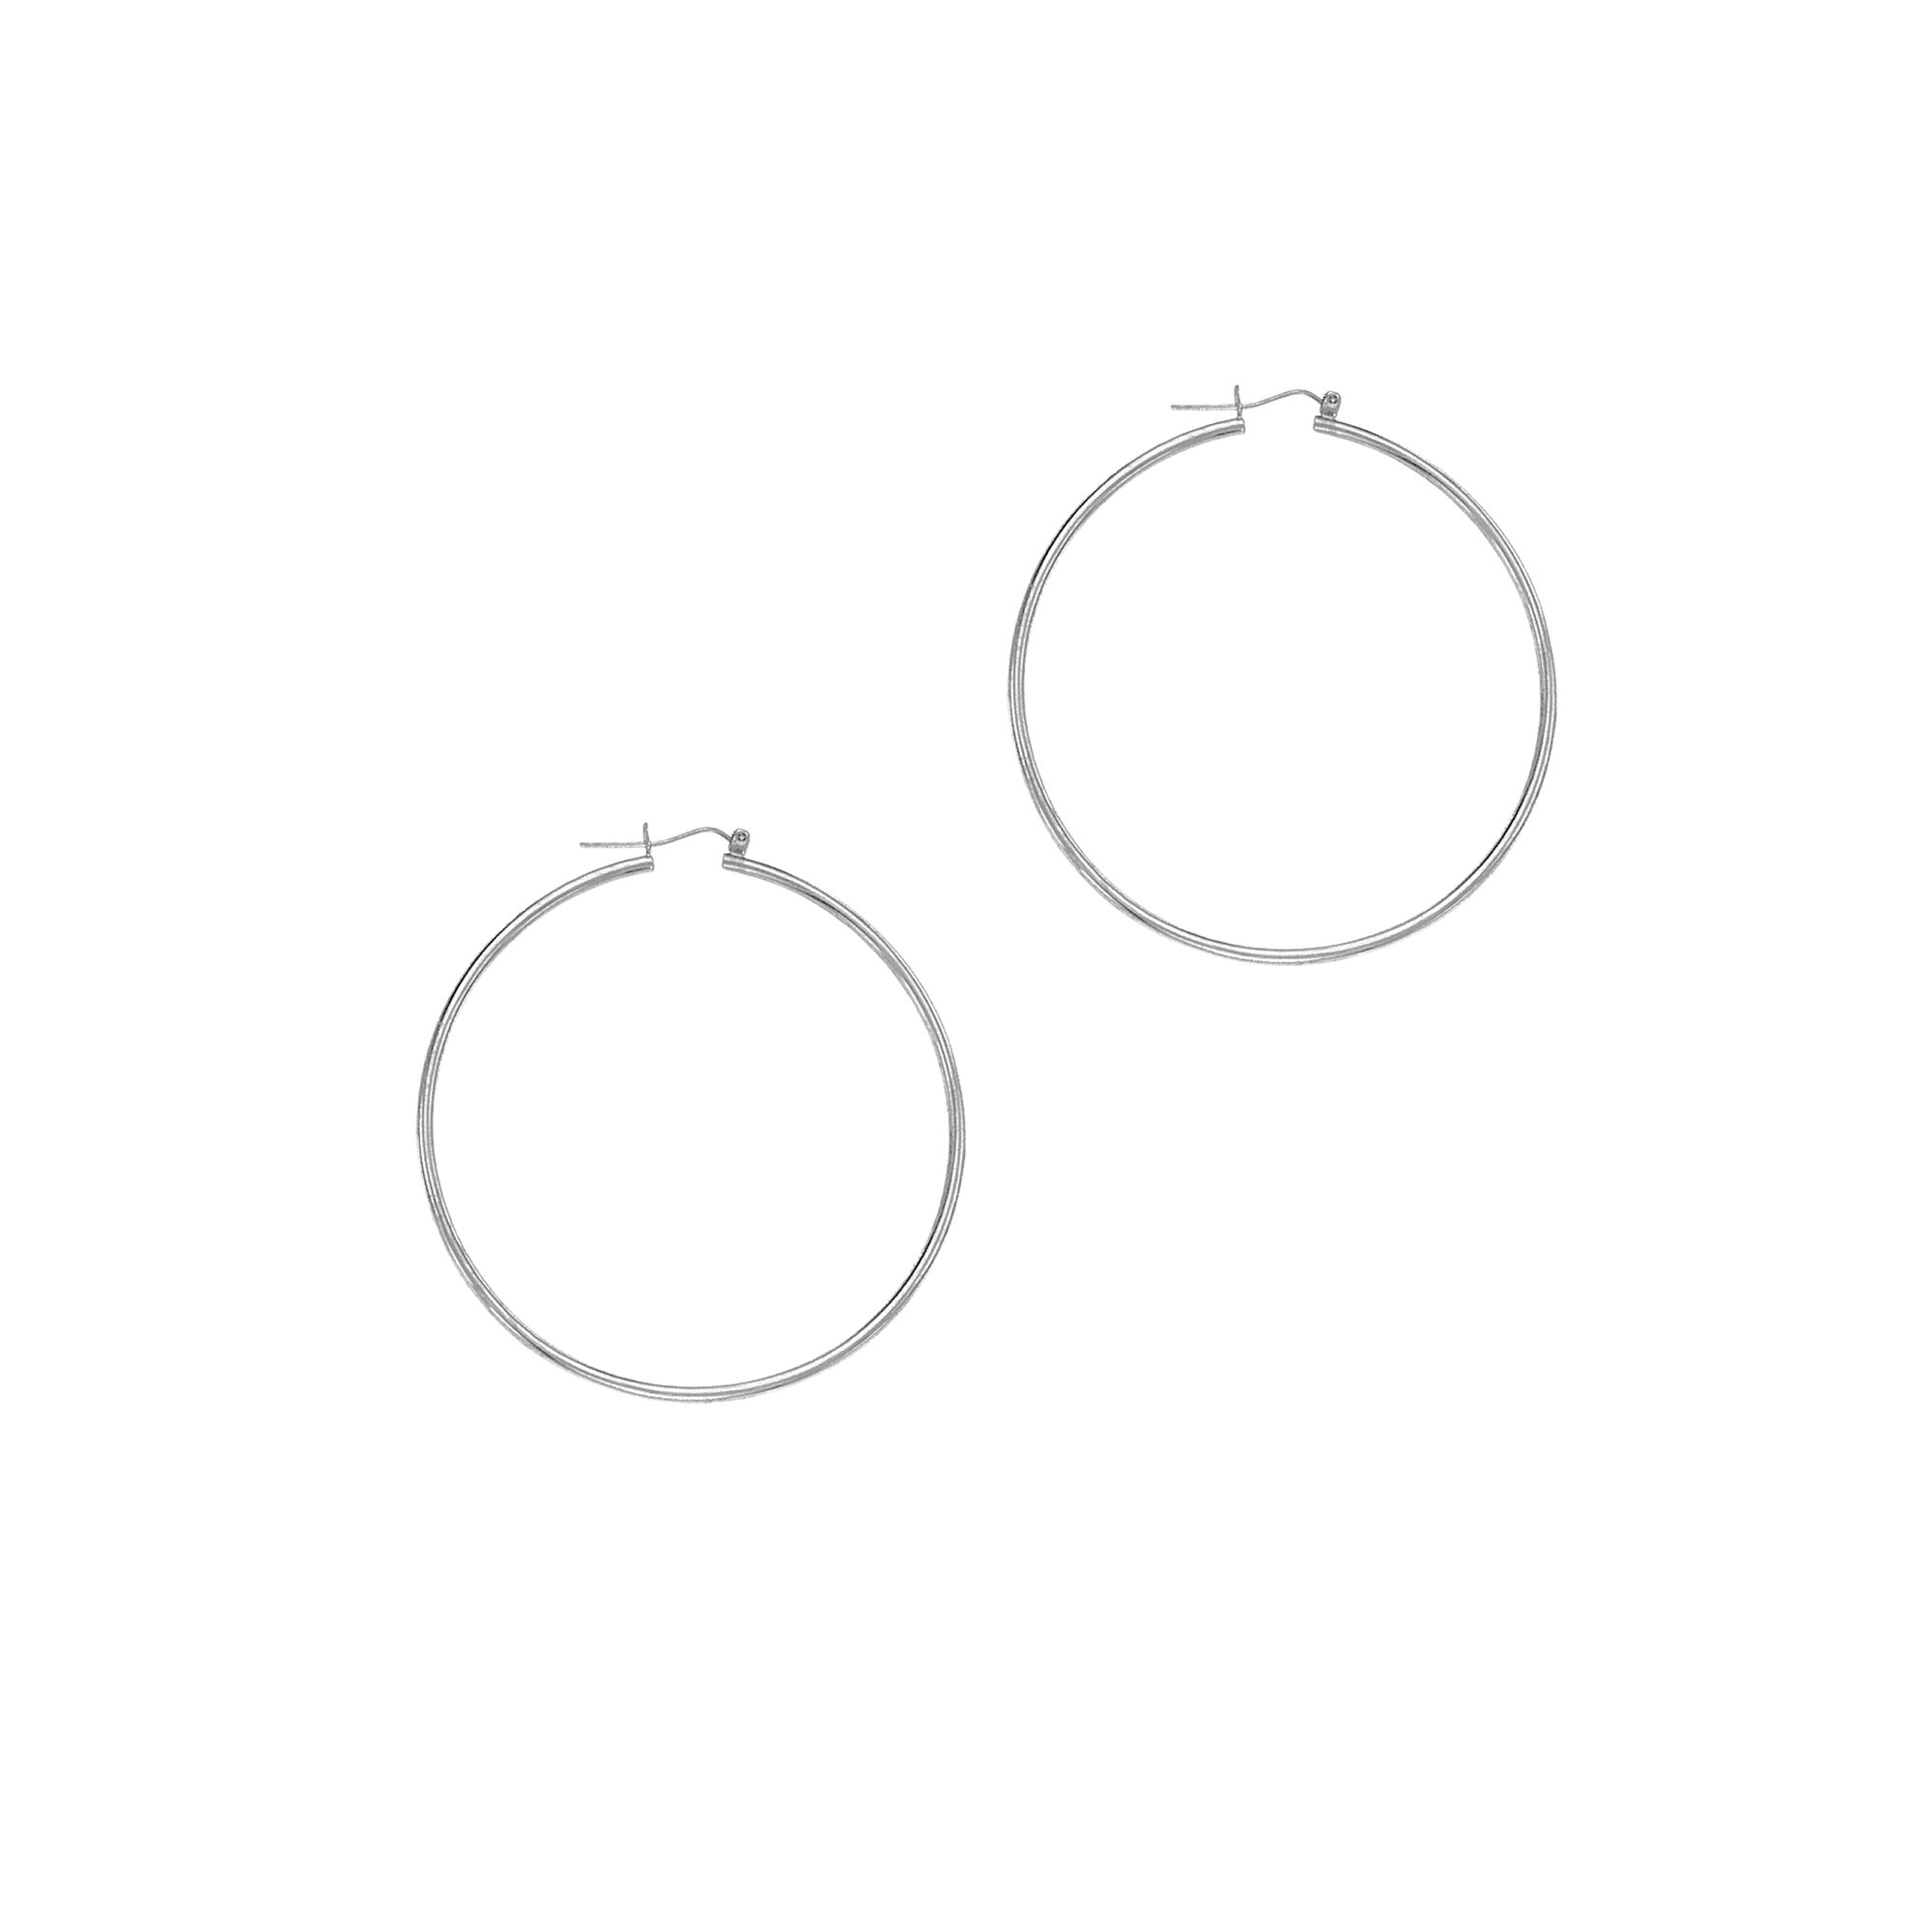 14 Karat Gold 1.5 mm Polished Hoop Earrings